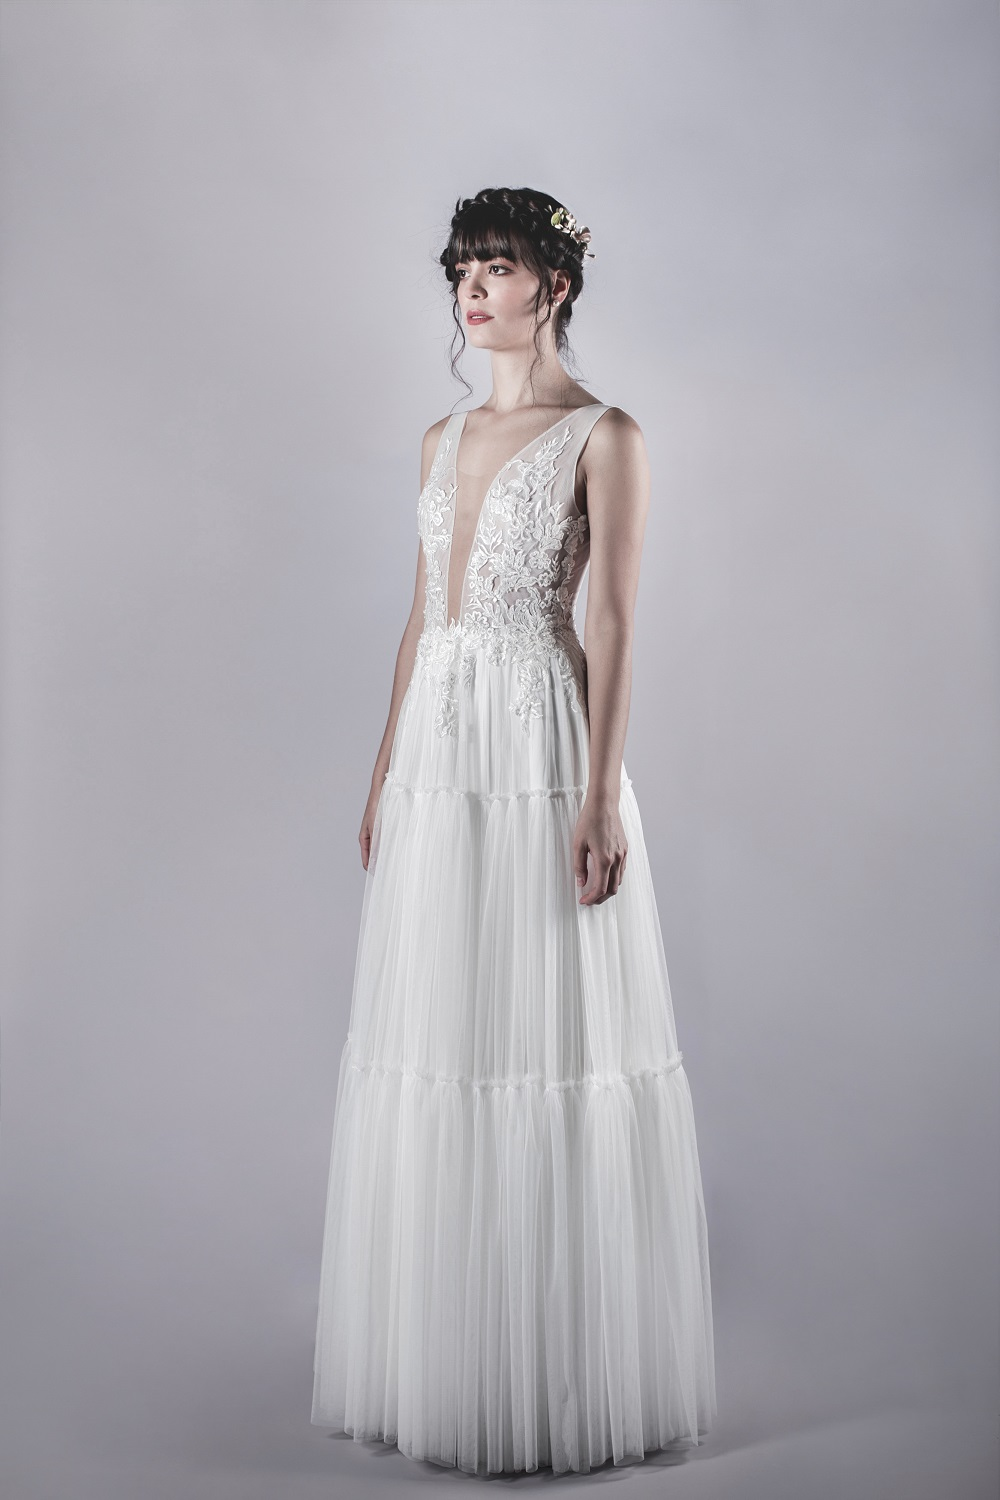 Catalina_Bayona_arianne_dress_210005_1-2